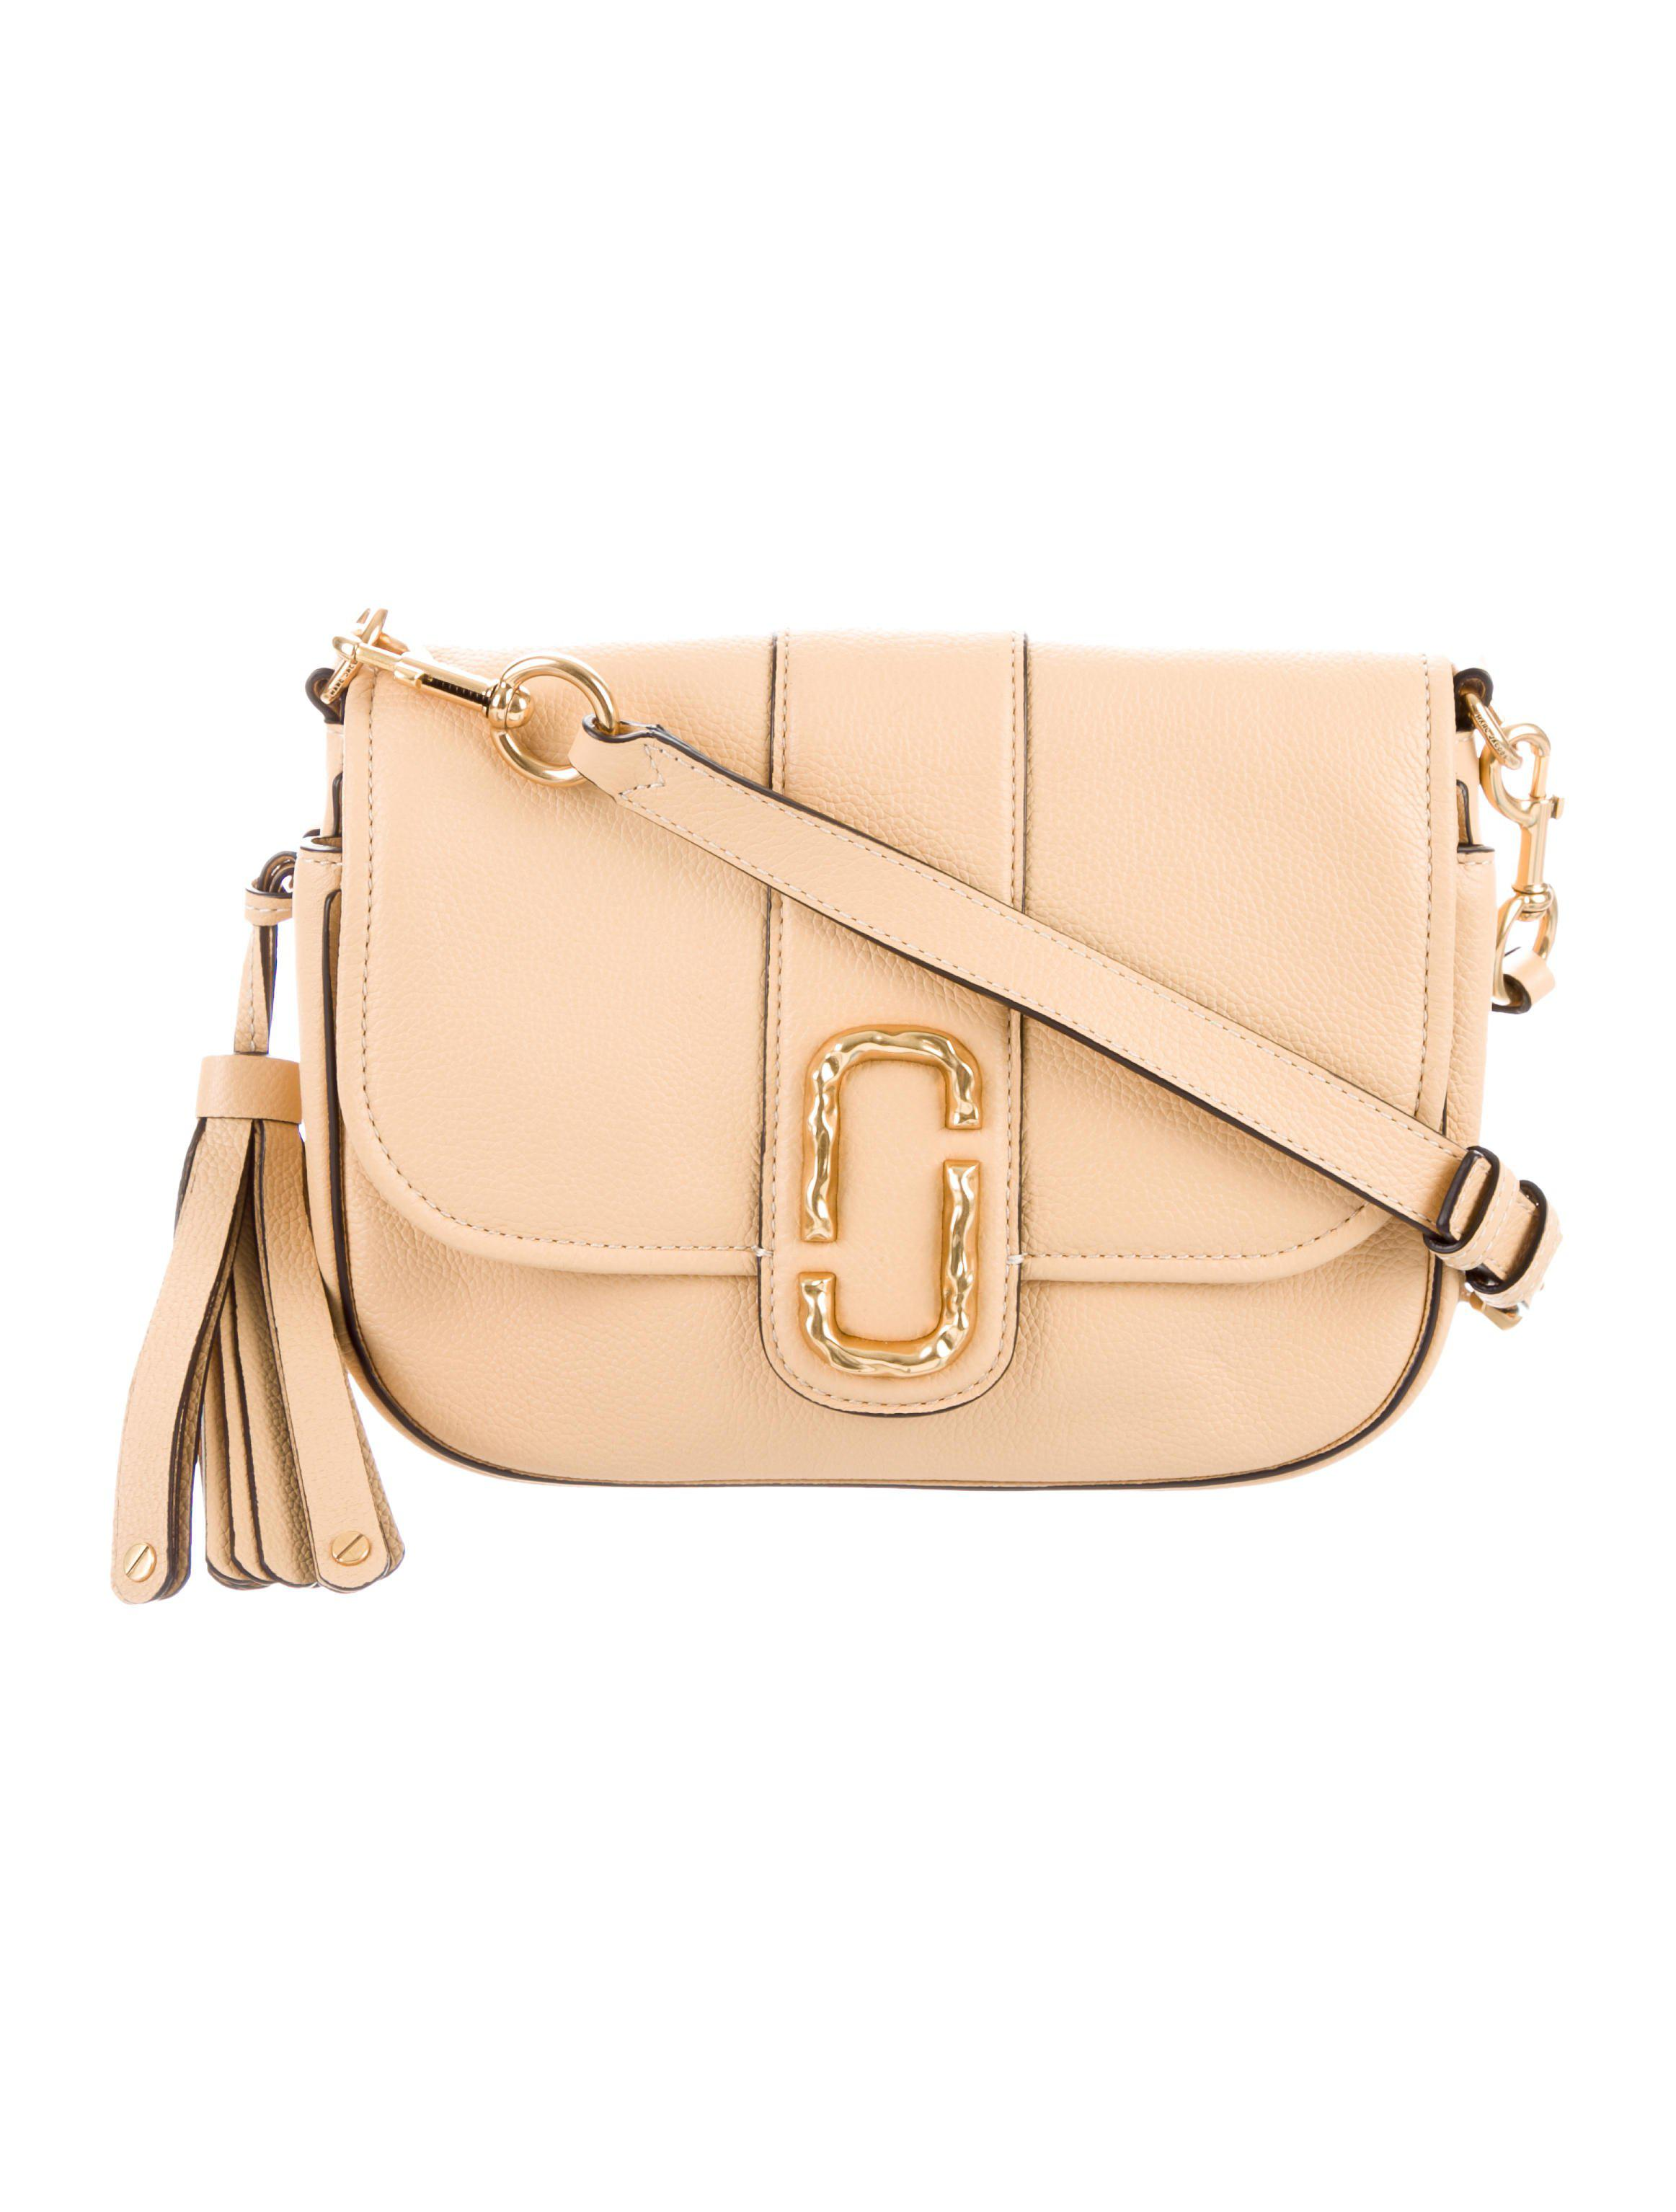 Lyst - Marc Jacobs 2017 Interlock Small Courier Crossbody Bag Tan in ... 6b32b806565cb